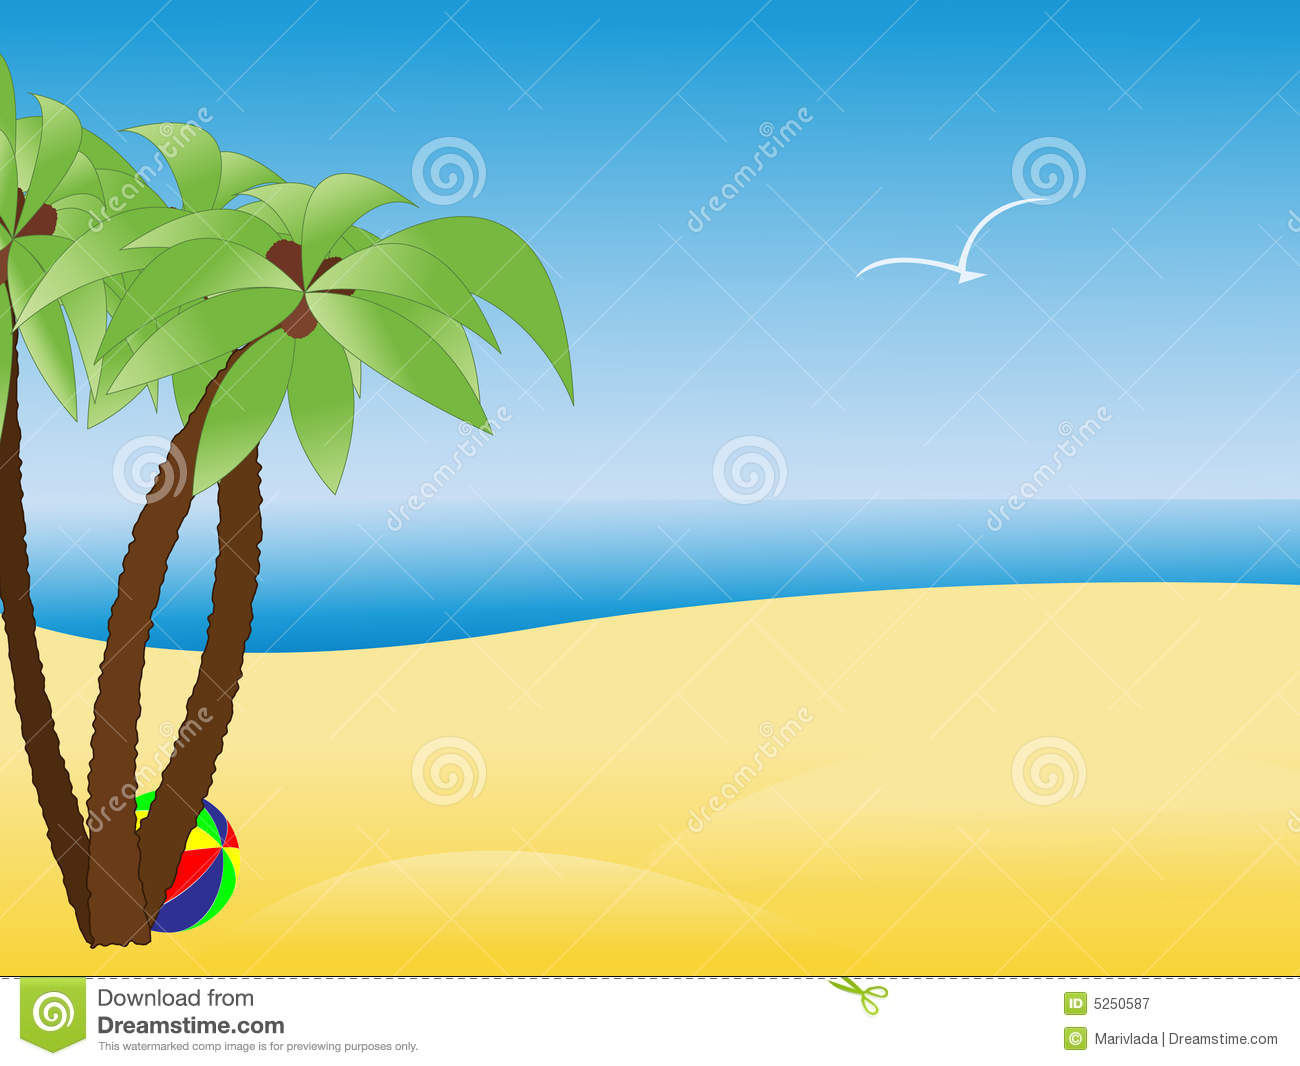 Clip Art Beach Scene Clipart beach scene stock illustrations 6712 with empty tropical palm trees royalty free photography